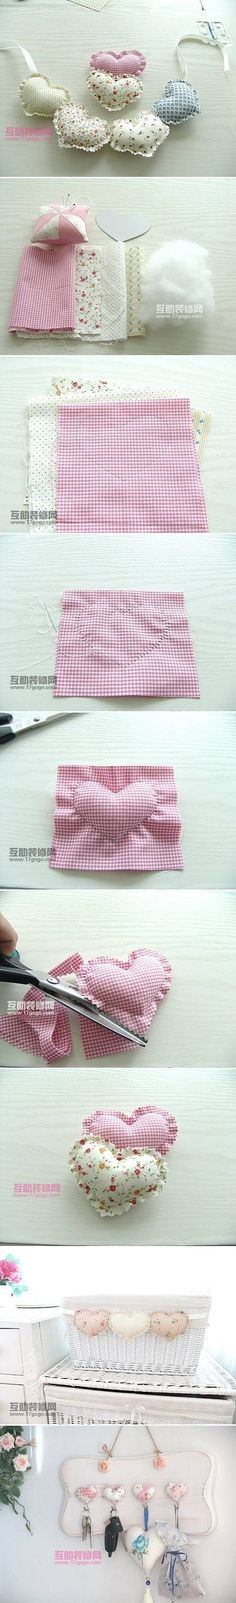 DIY Fabric Heart Pendant DIY Projects | UsefulDIY.com Follow Us on Facebook ==> http://www.facebook.com/UsefulDiy